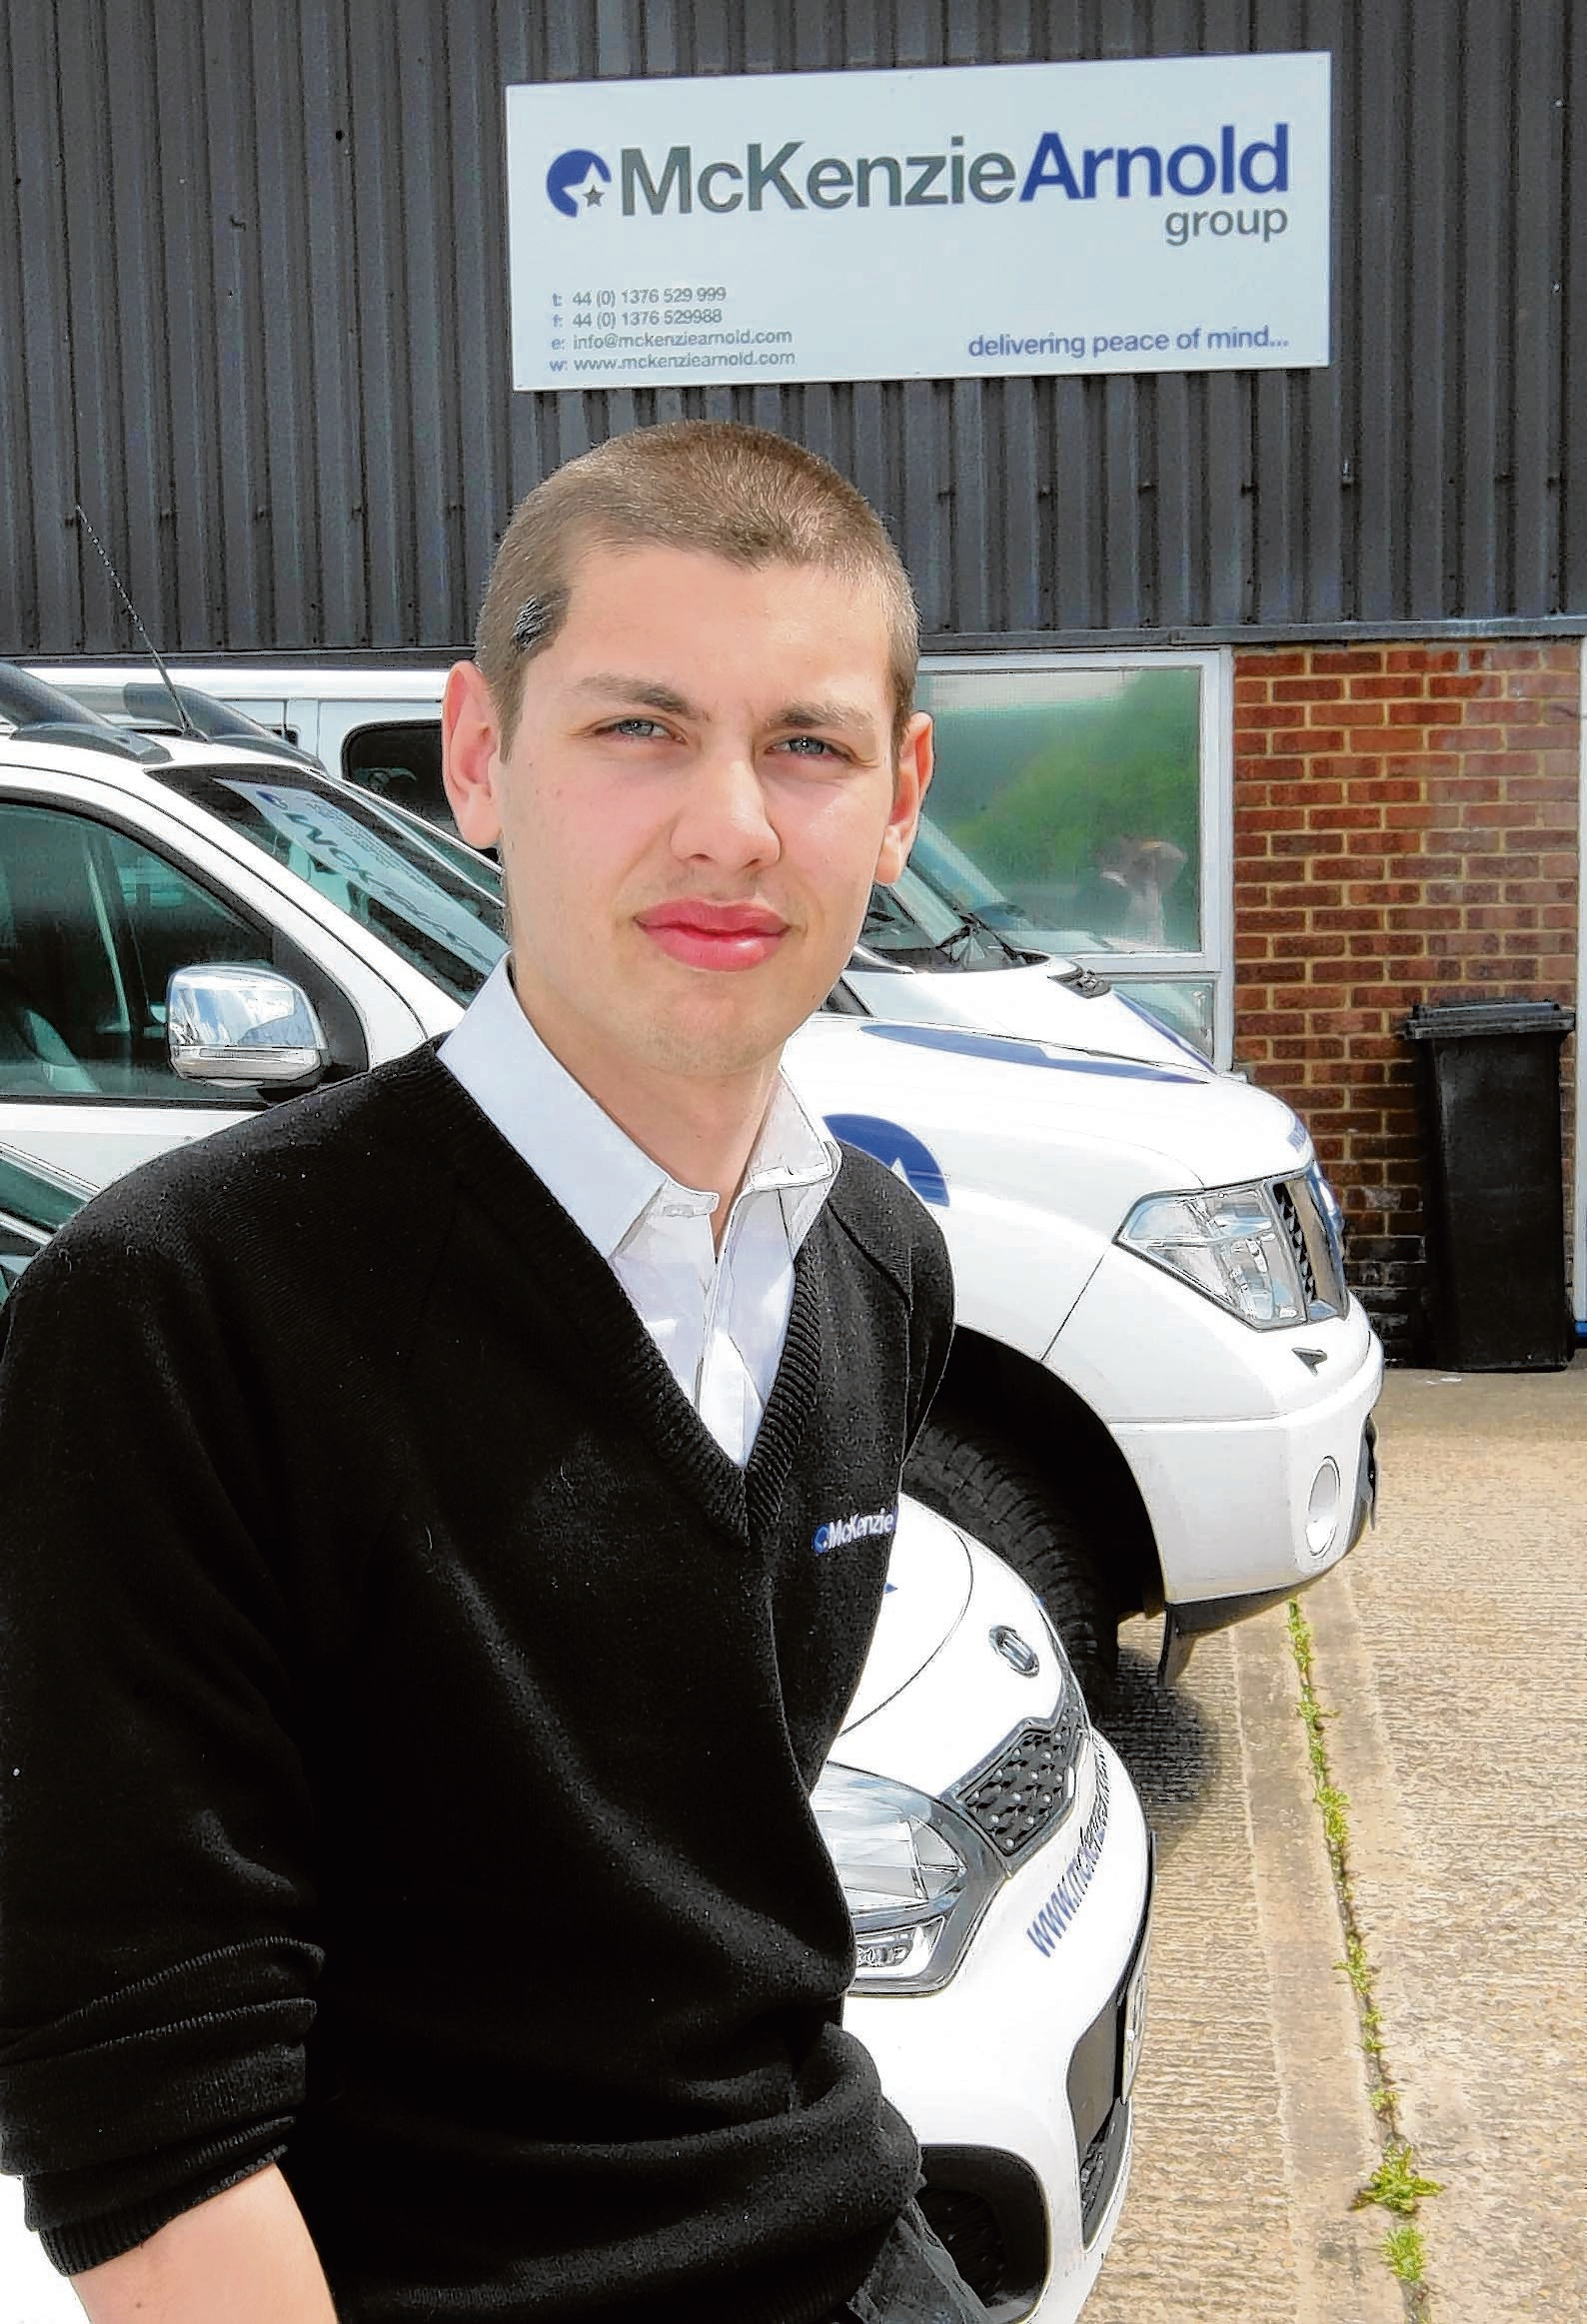 Hero cadet honoured by ambulance service after coimg to aid of elderly woman in Witham